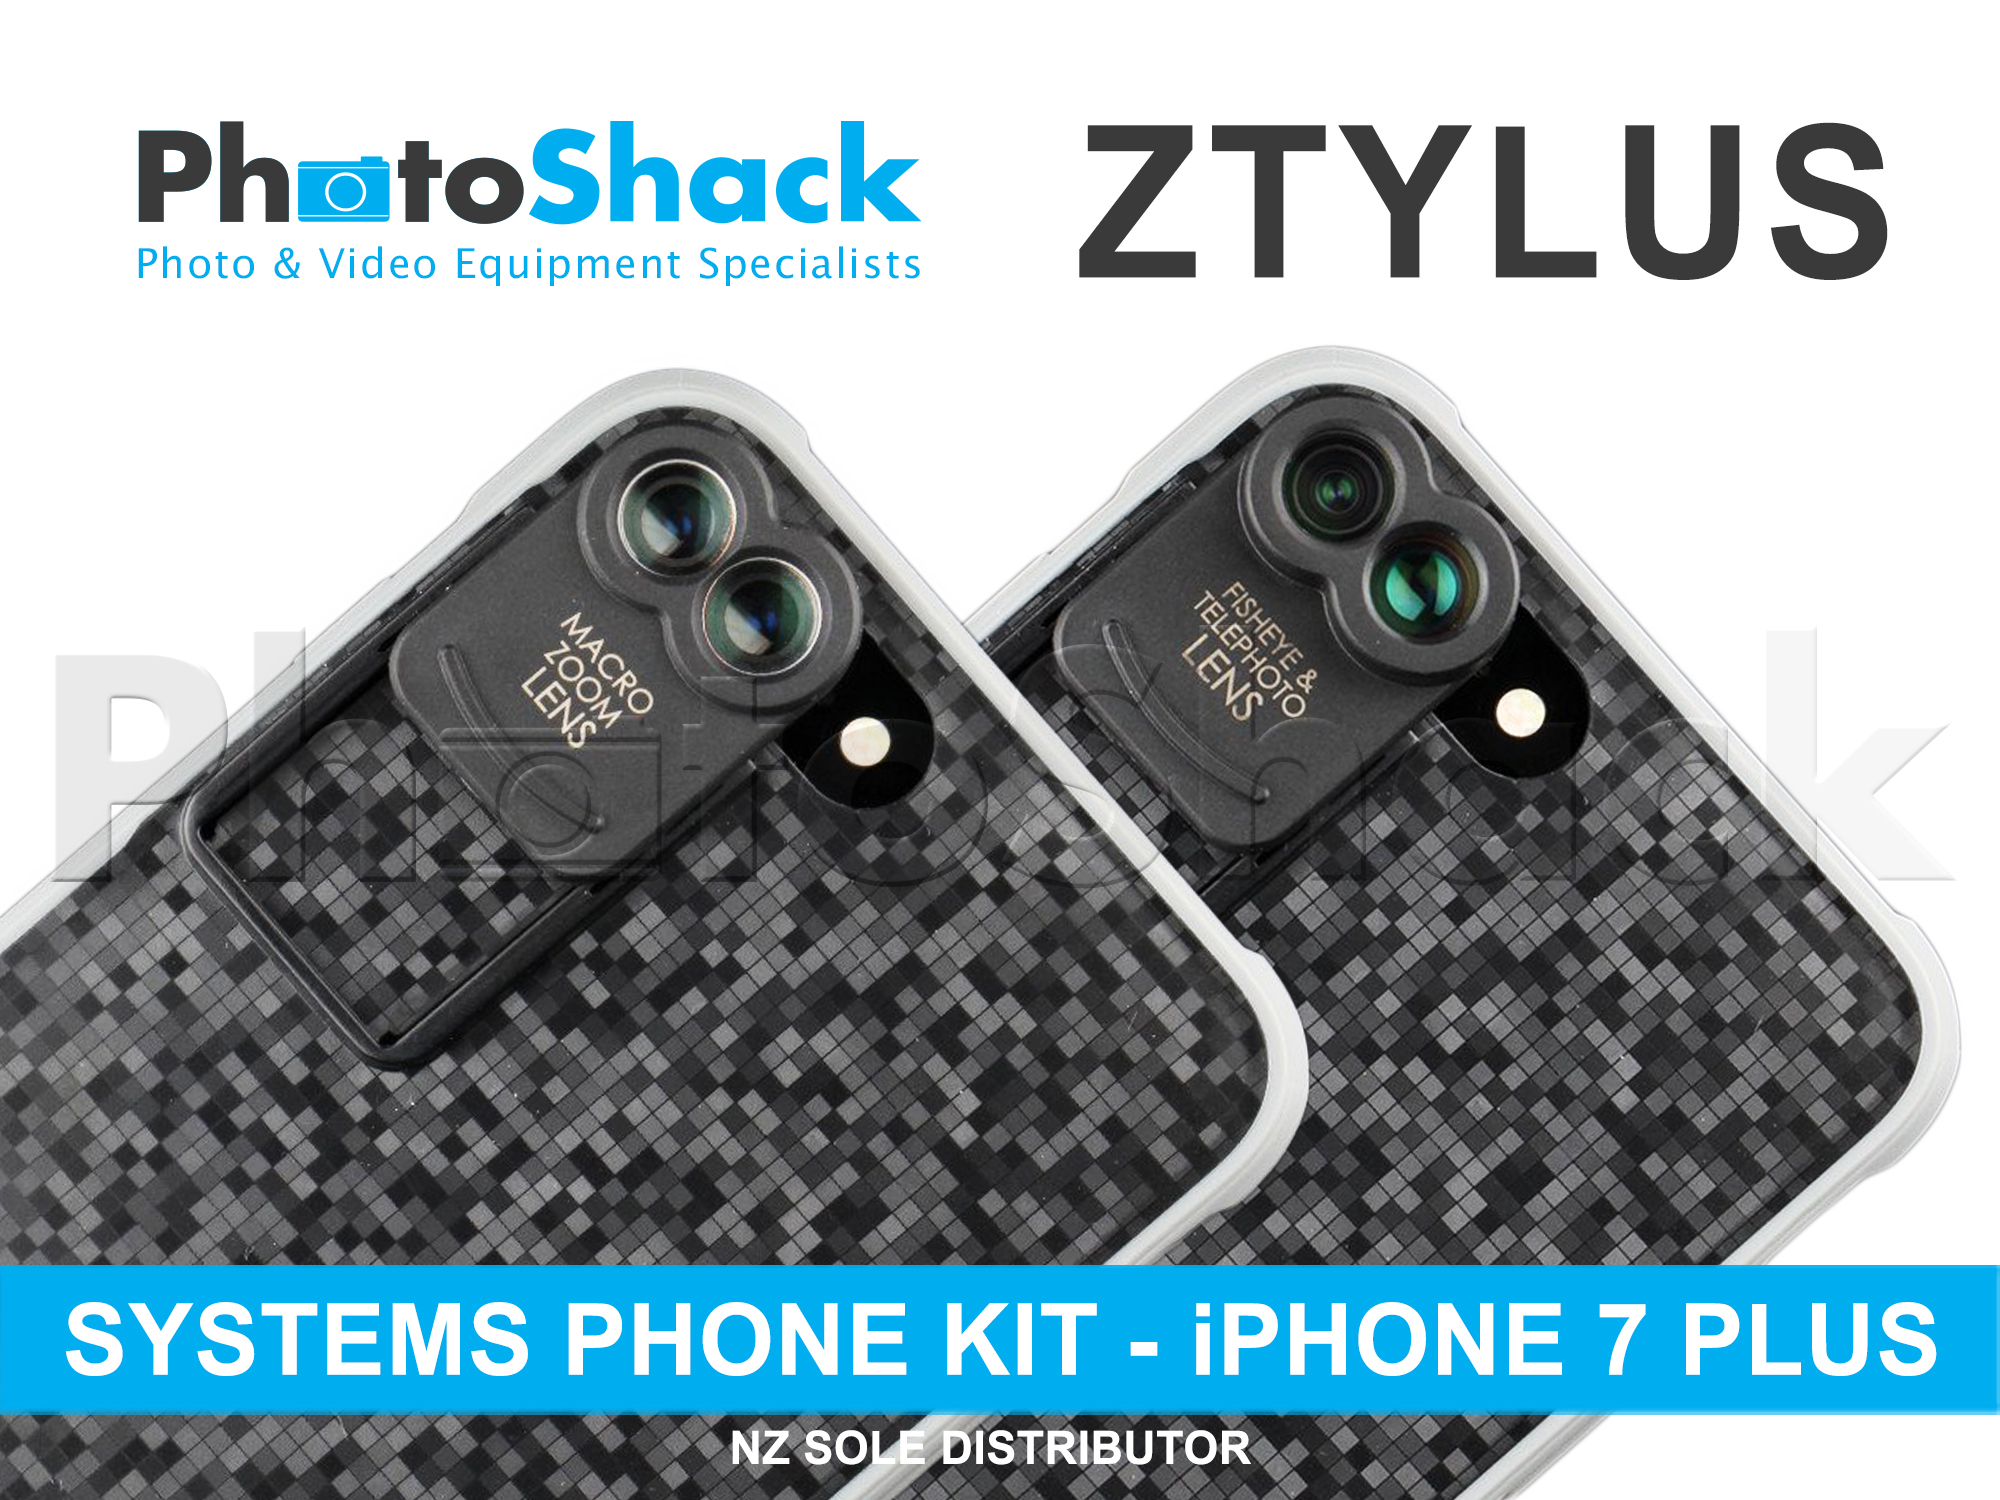 ZOOM Lens Kit for iPhone 7 PLUS